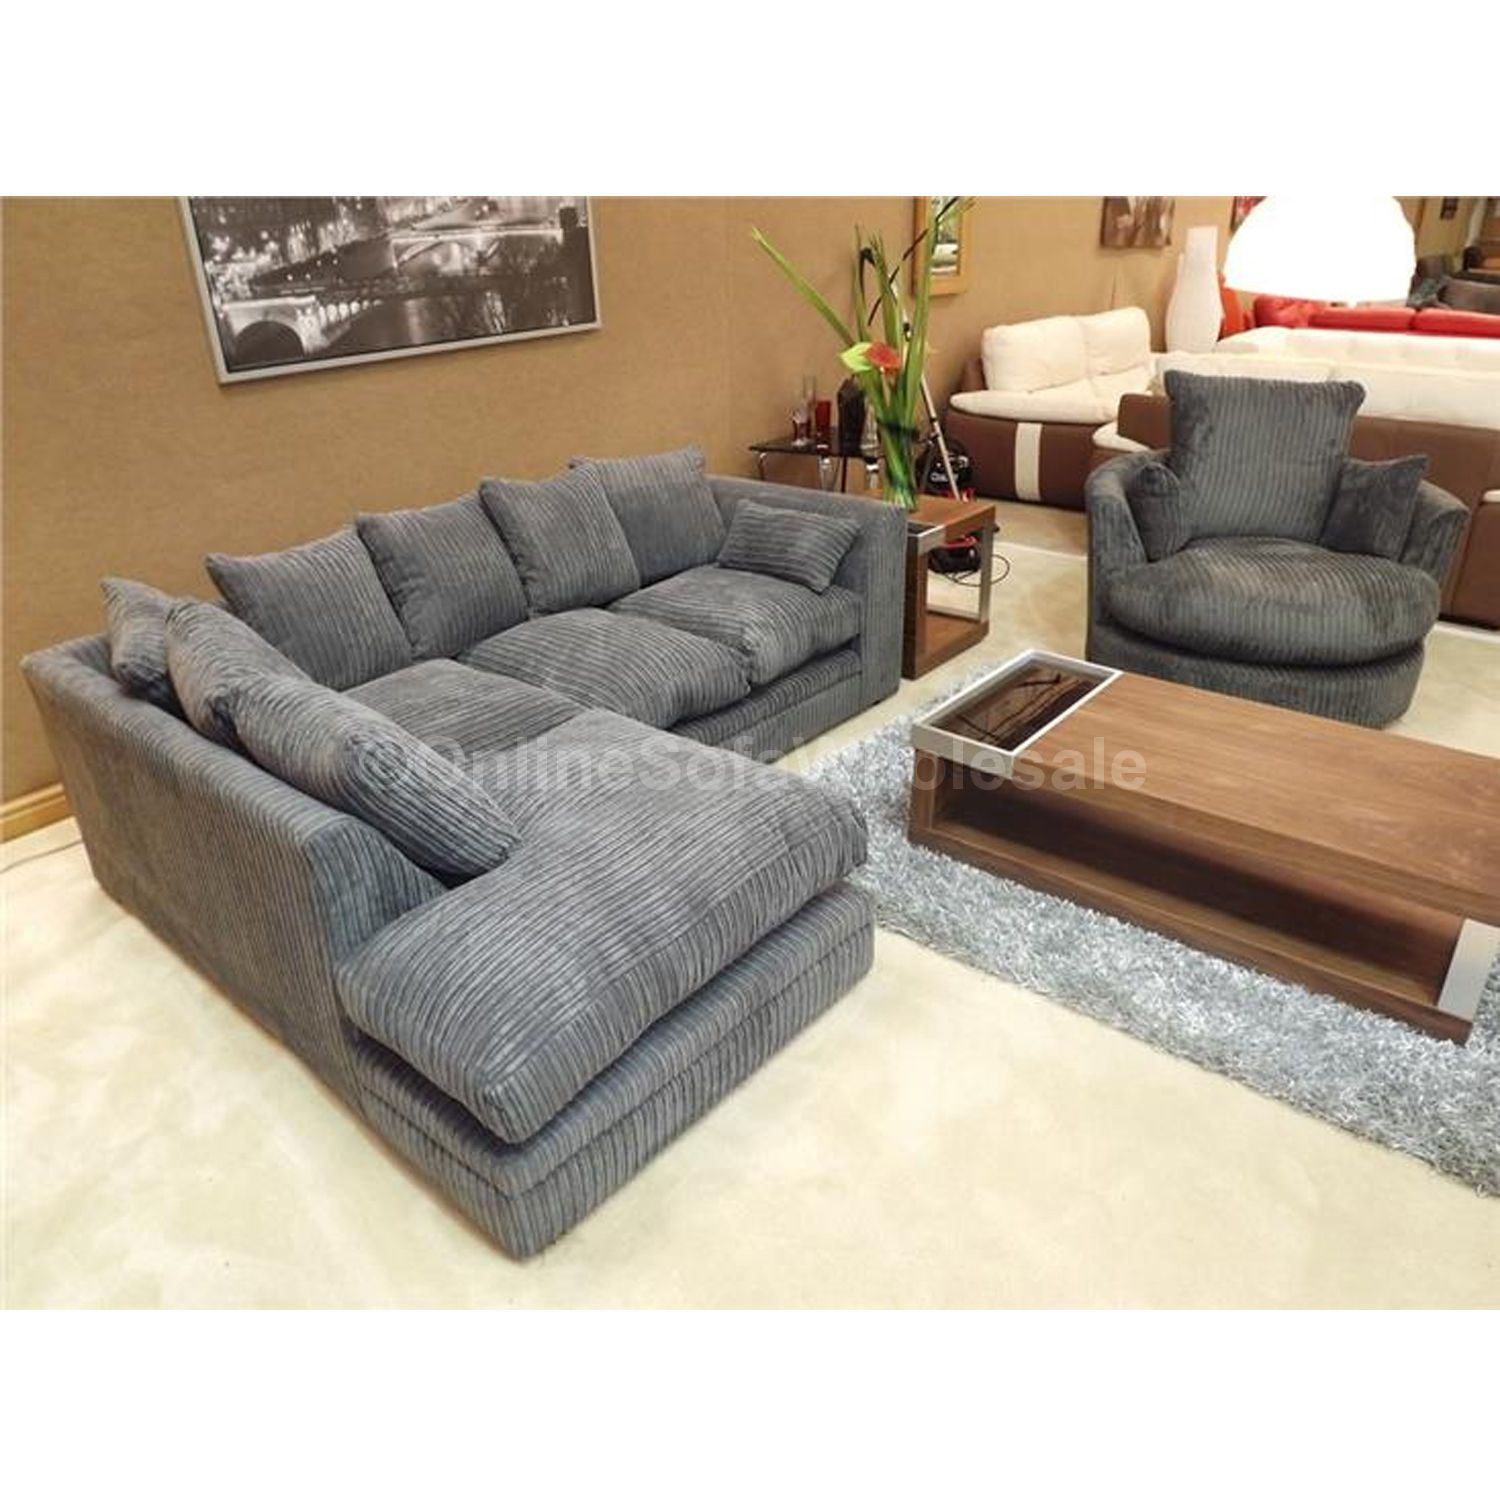 Details About Dylan Corner Sofa Left Hand Plus Swivel Chair All Over Dark Grey Fabric Colour